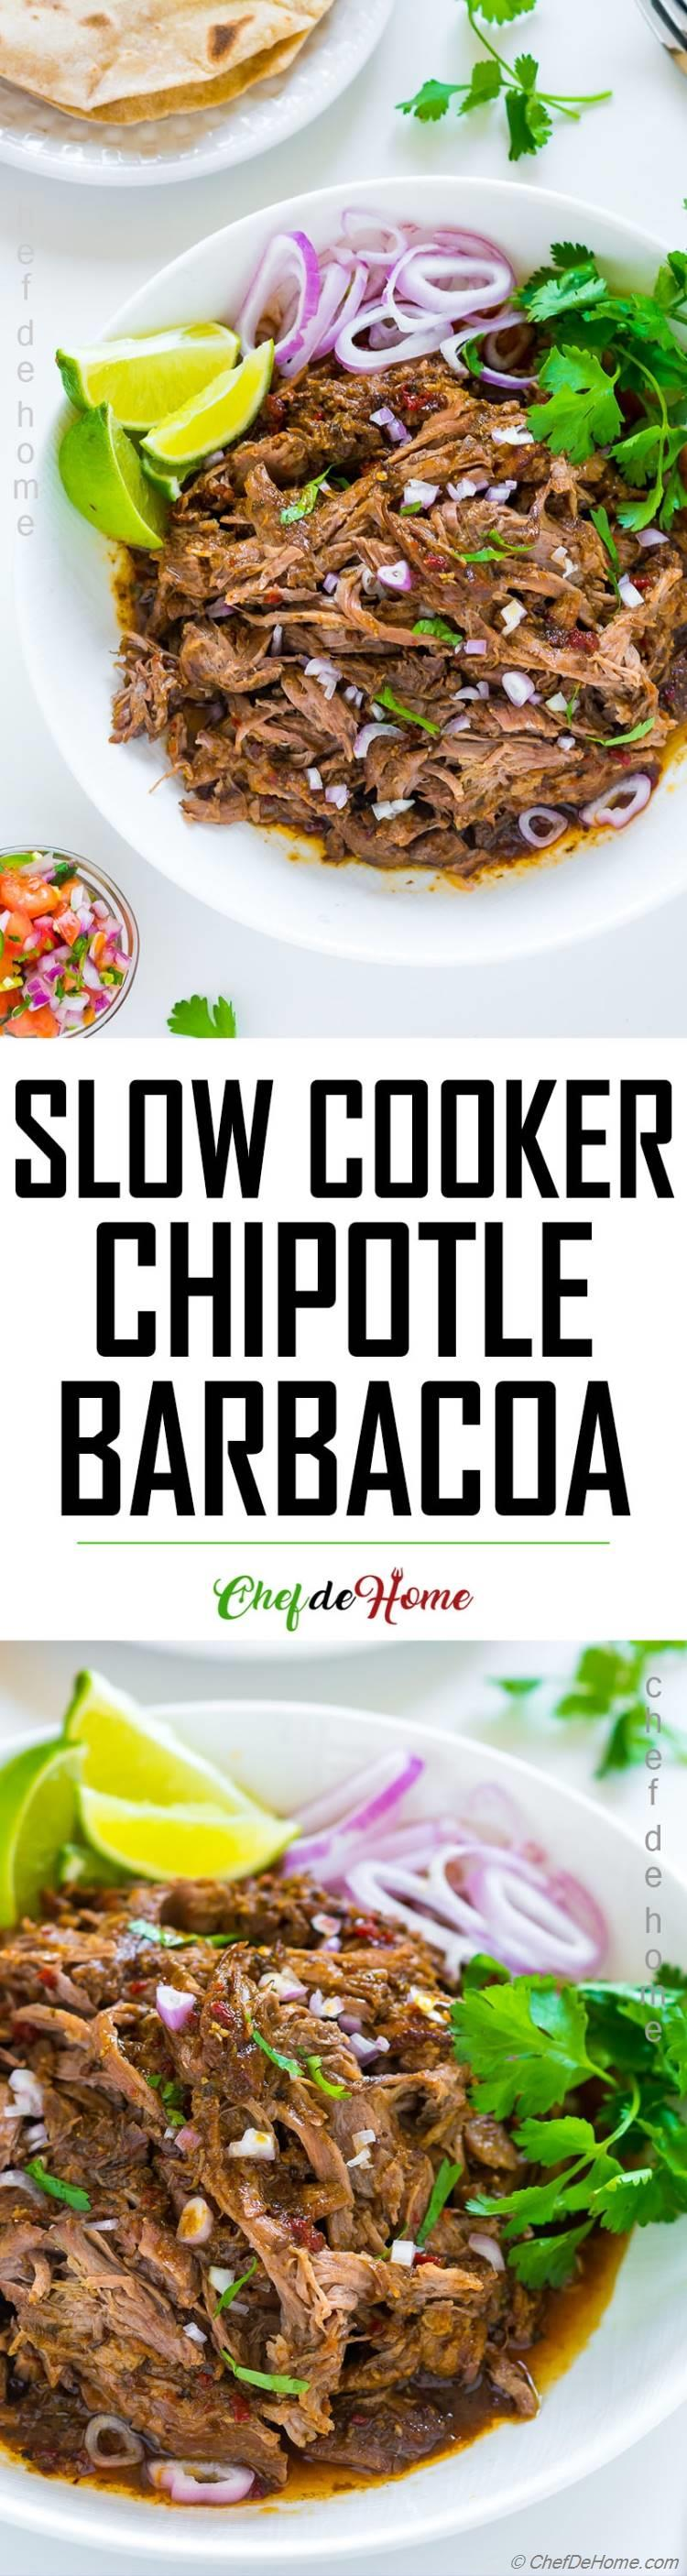 Slow Cooker Chipotle Barbacoa Recipe